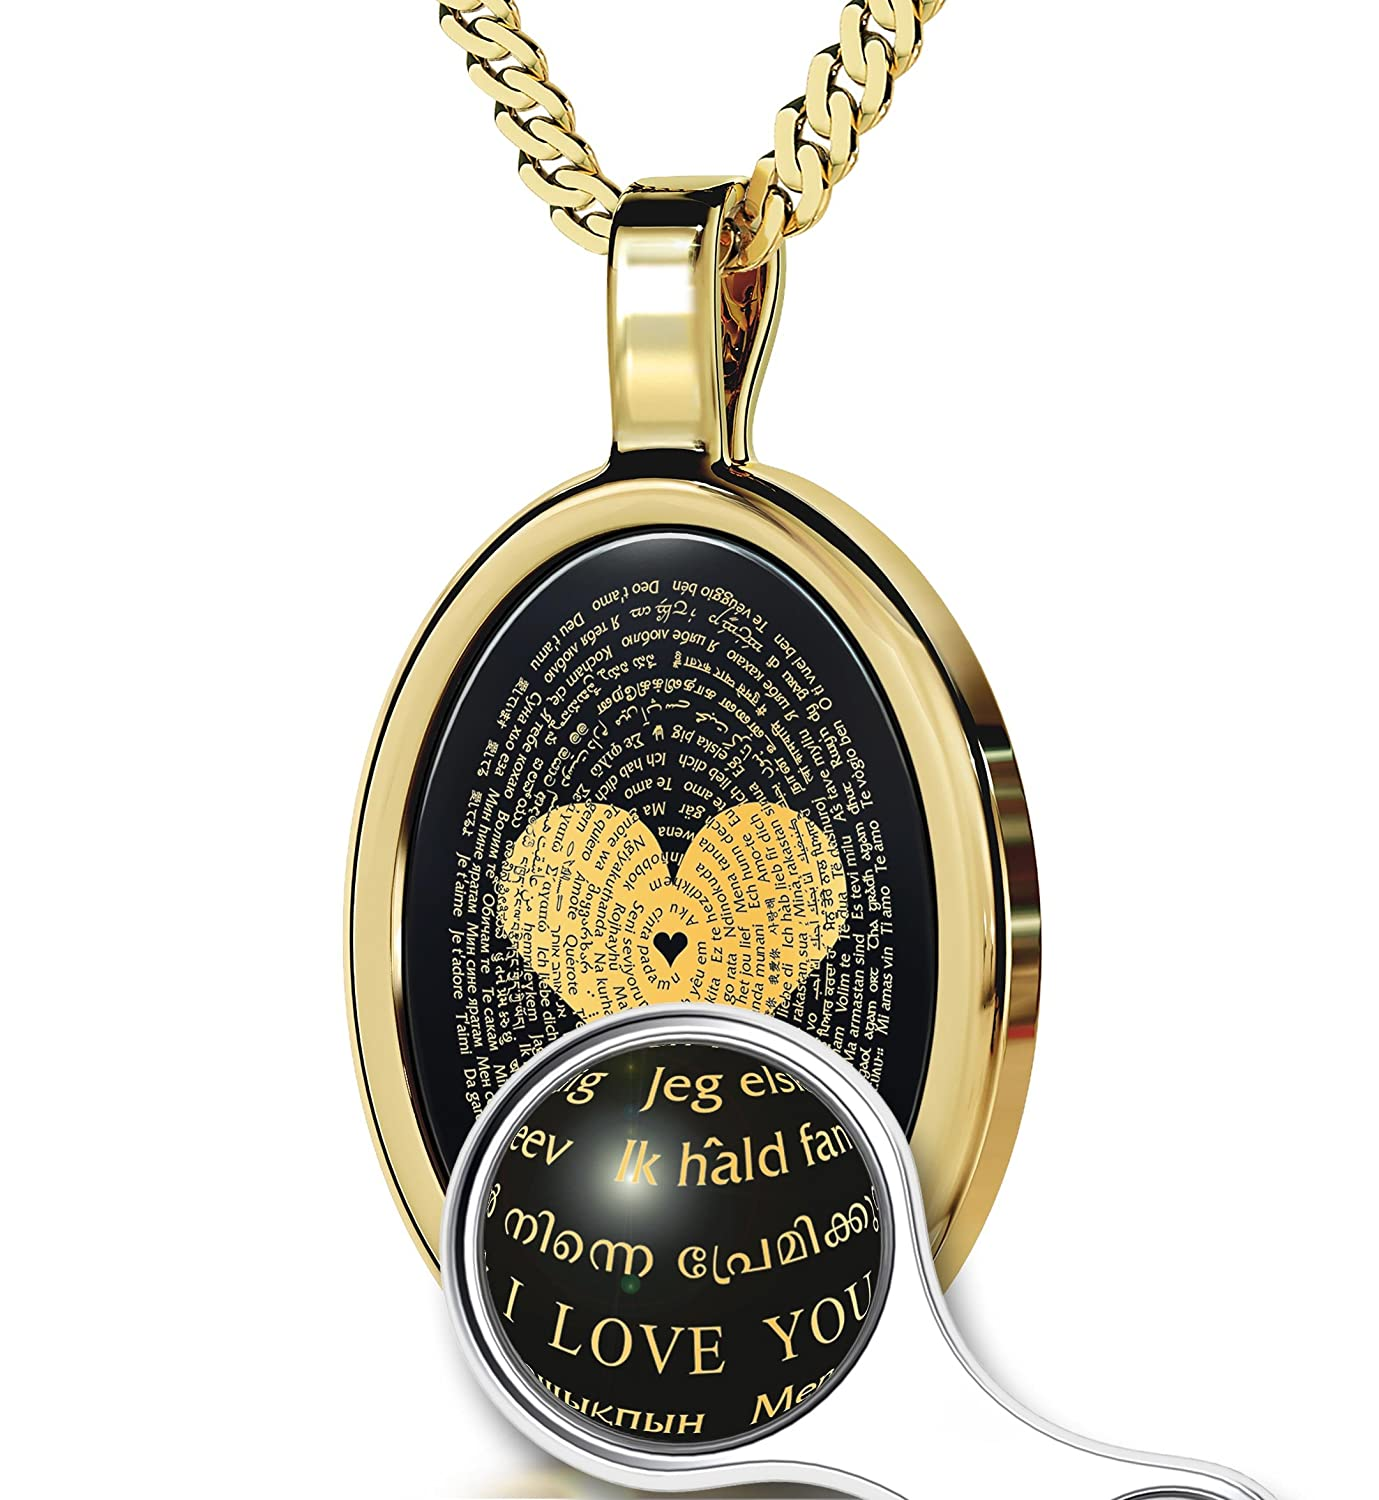 Gold Plated Love Jewelry – I Love You Necklace In 120 Languages Inscribed in 24kt Gold on Black Onyx Stone – Heart Pendant – Unique Gifts for Women